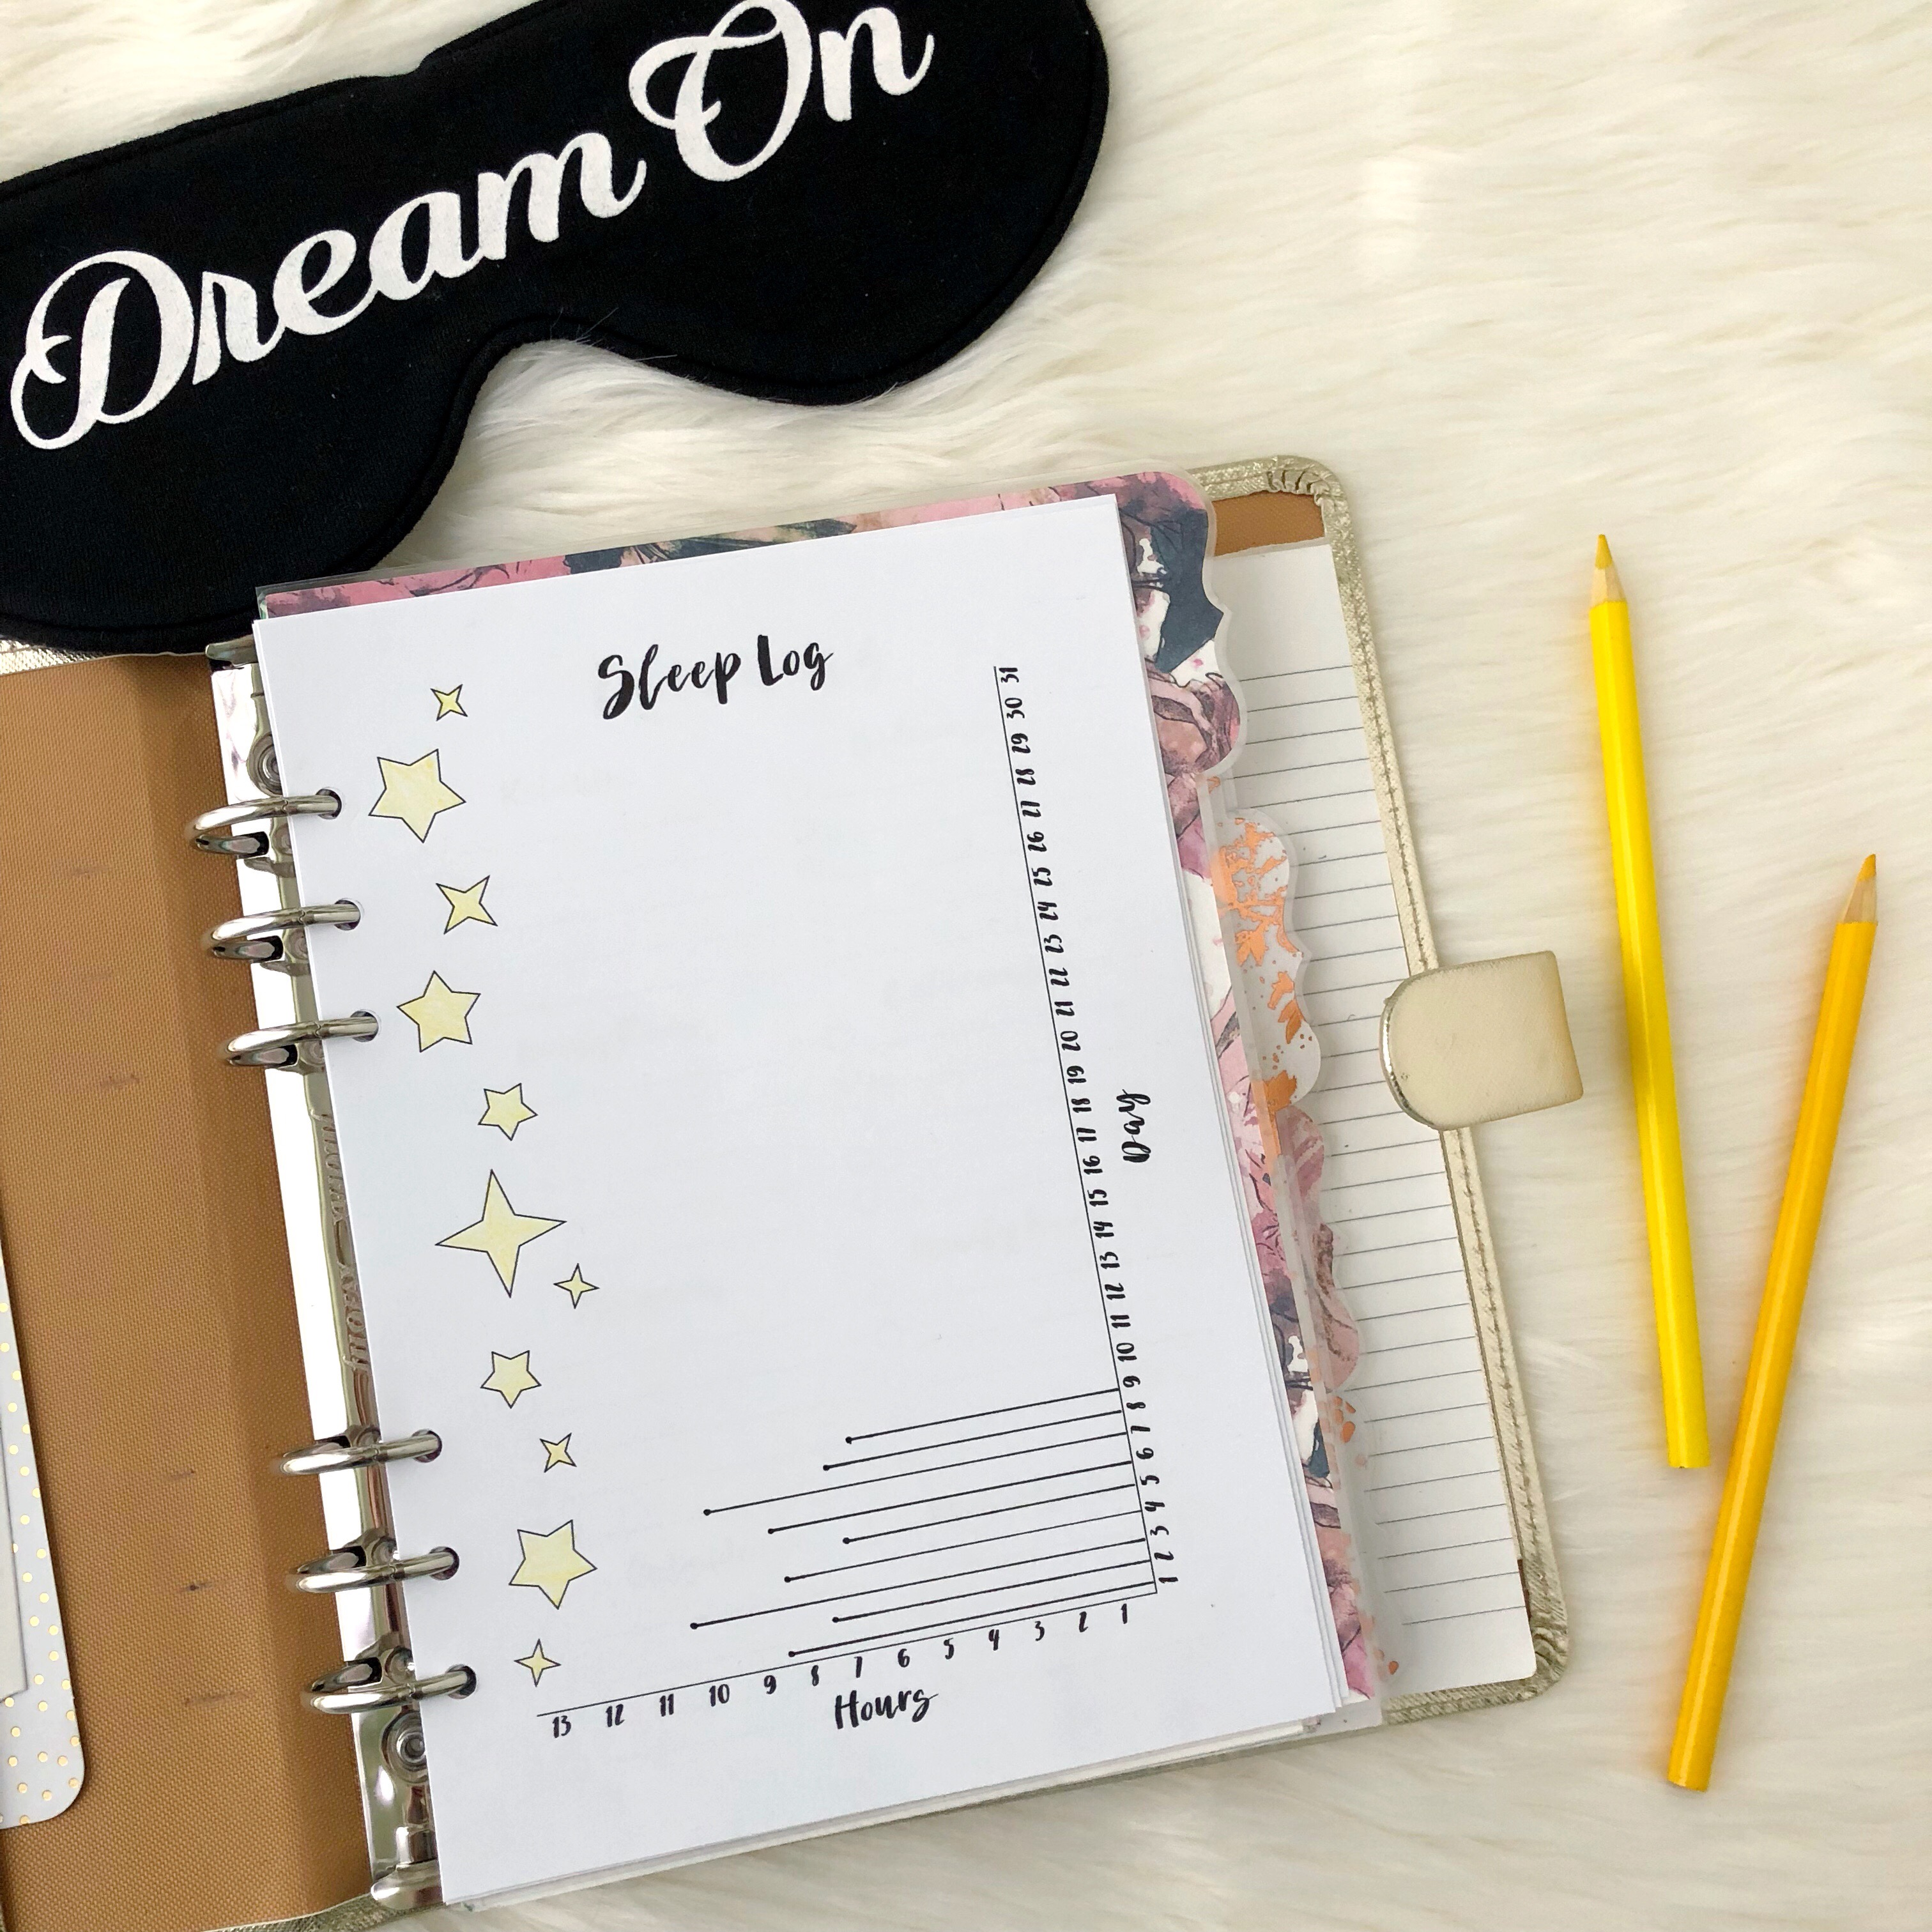 picture regarding Sleep Log Printable named Rest Log Include: Free of charge A5 Planner Printable - Purple Bows